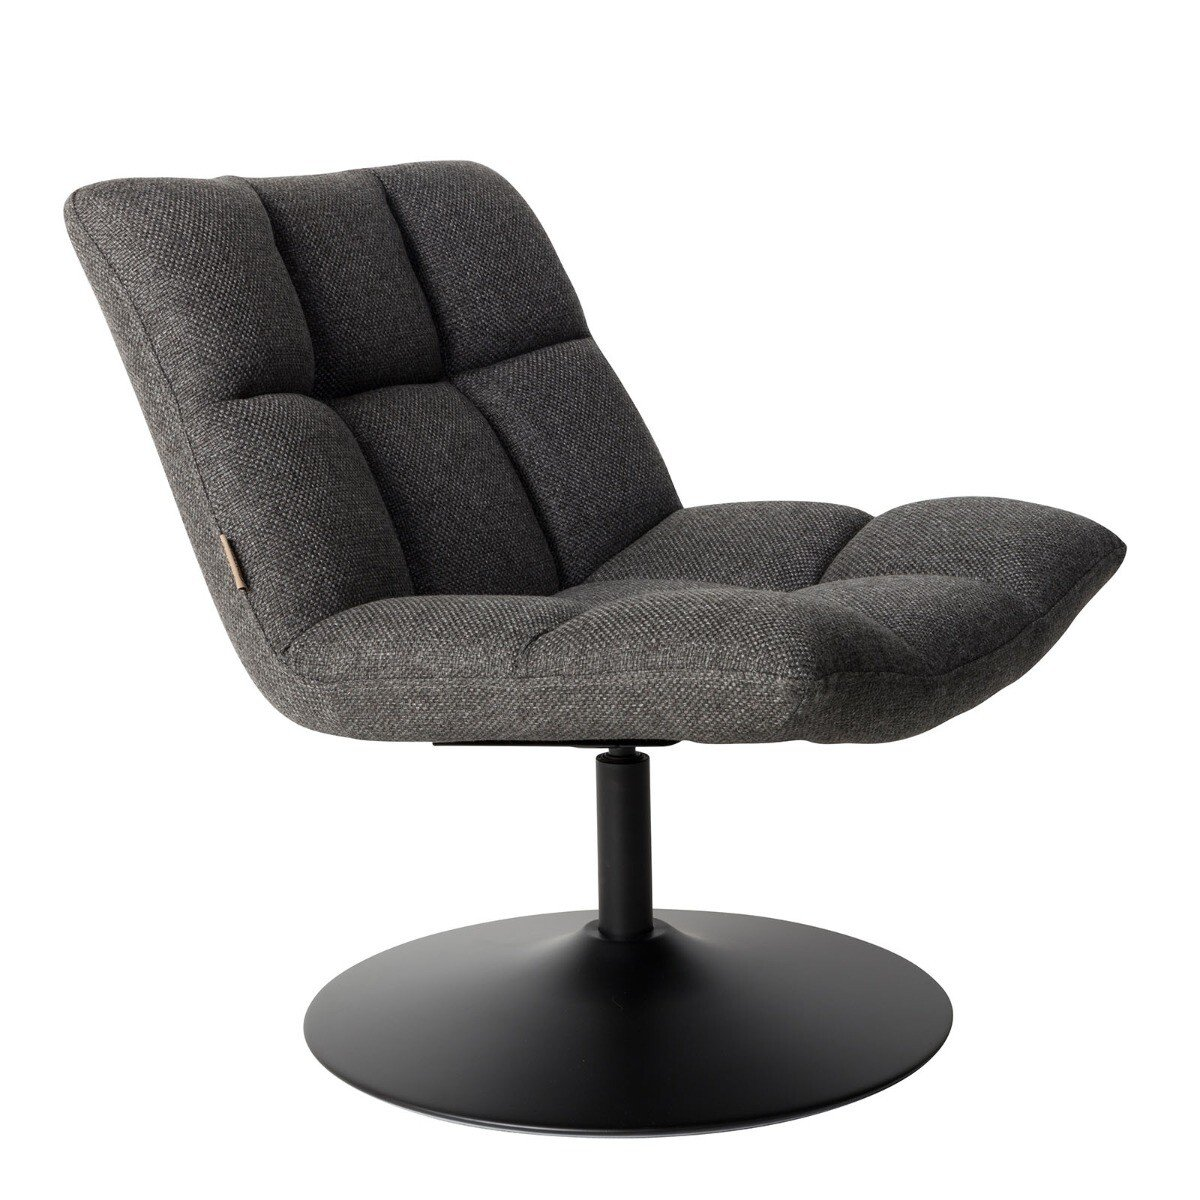 Dutchbone Fauteuil Bar dark grey 78 x 66 x 81